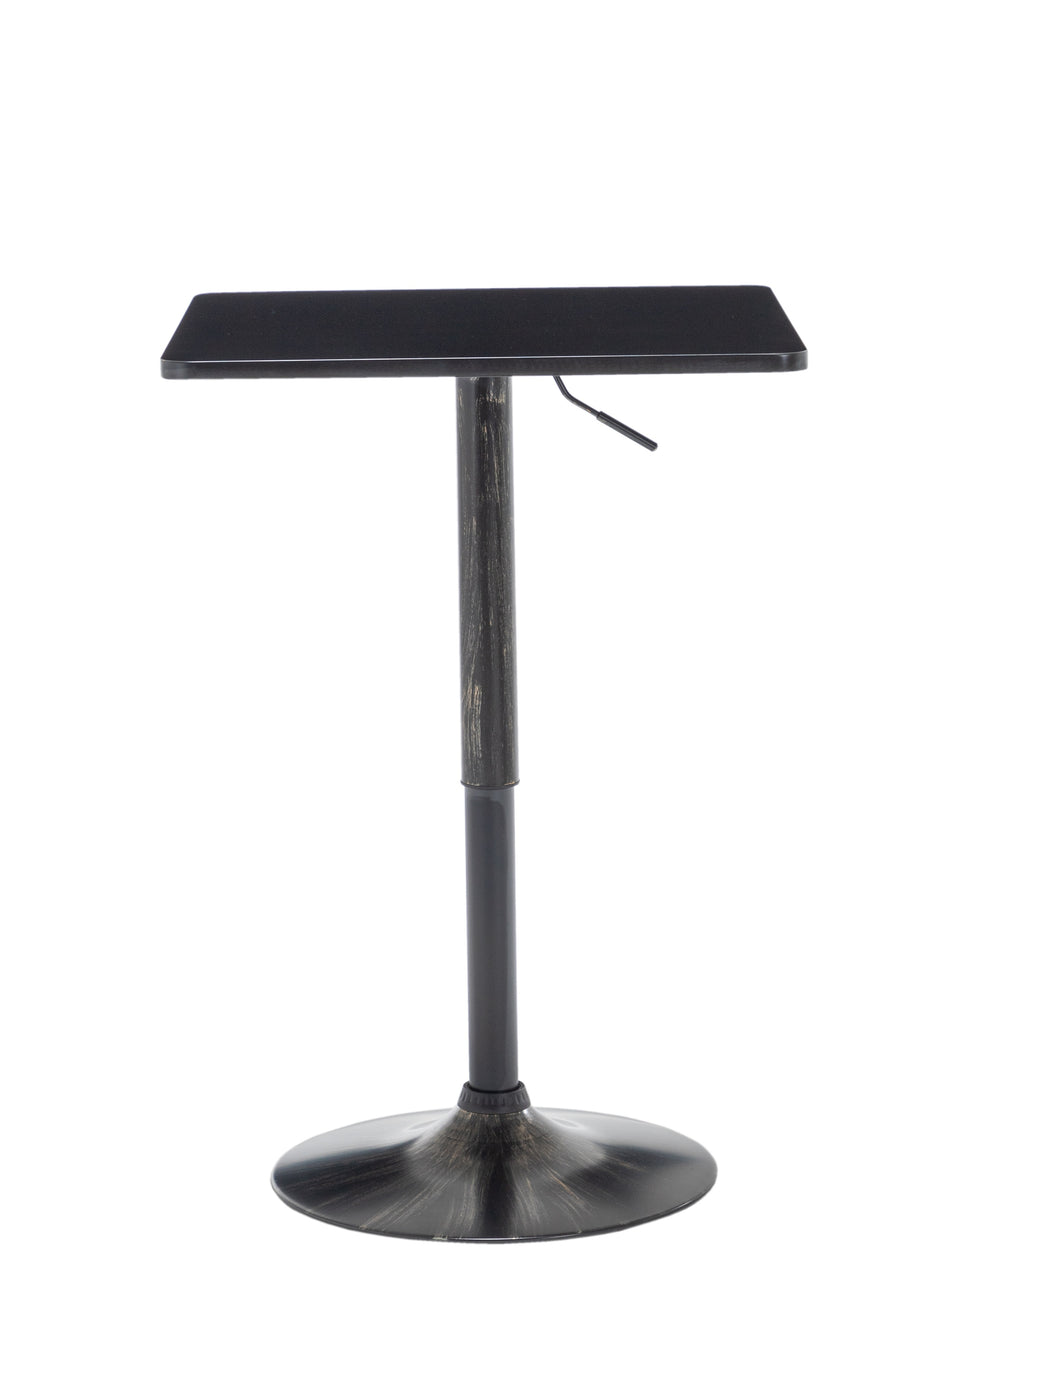 Golden Black Adjustable 27-36 Height Industrial Height Metal Bar Table Swivel Square Cocktail Wood Top Cocktail Pub Bistro